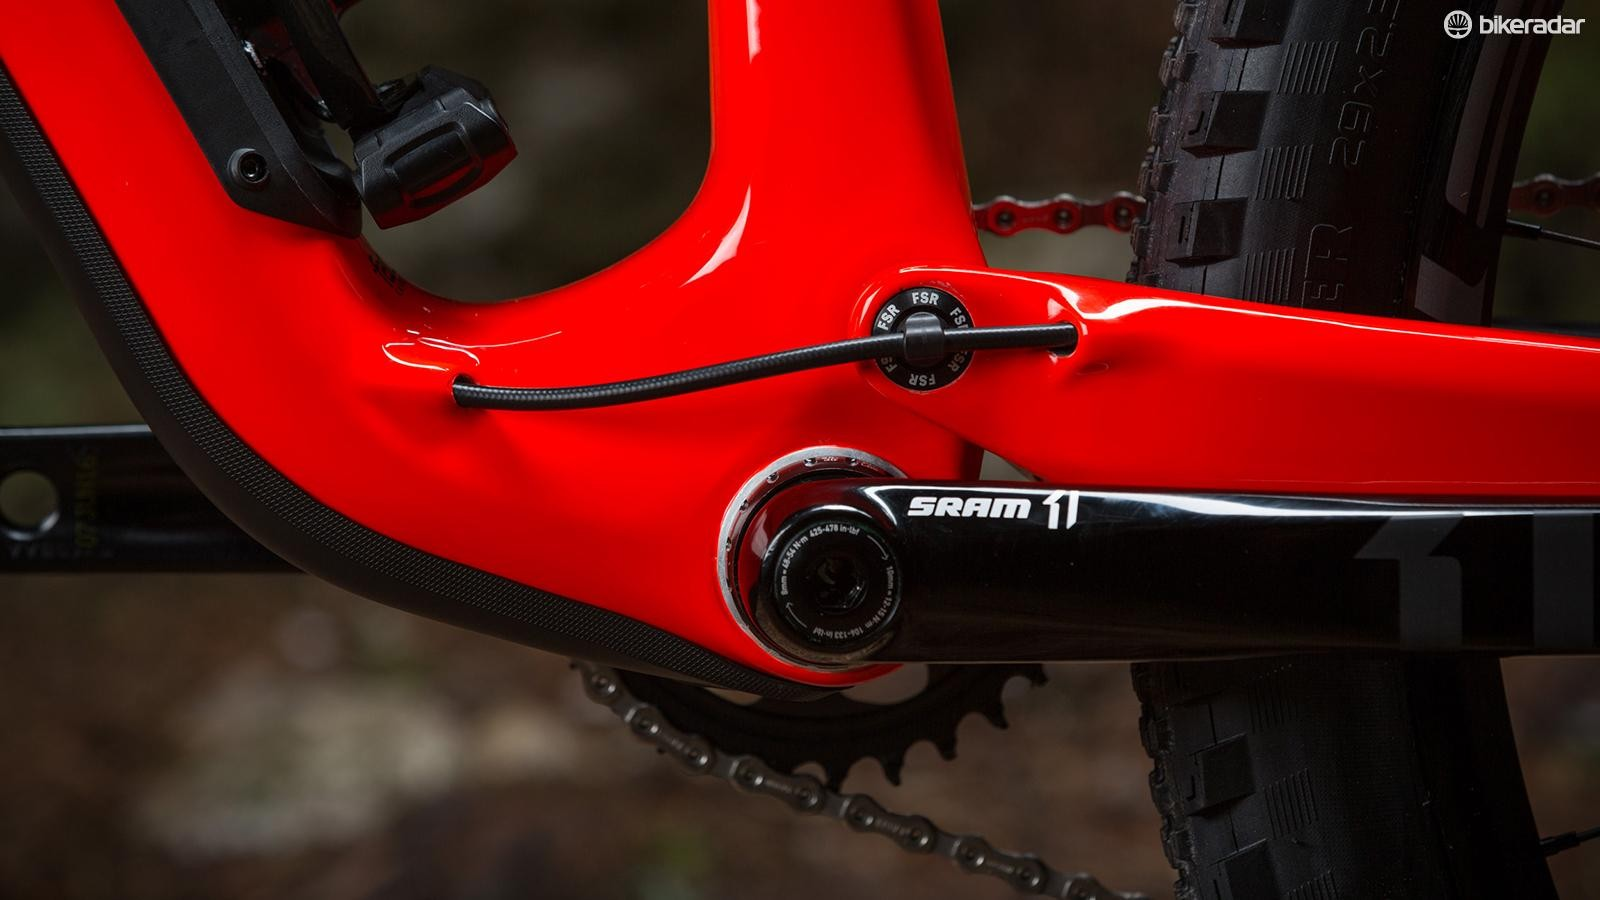 The enduro switches back to a 73mm threaded bottom bracket